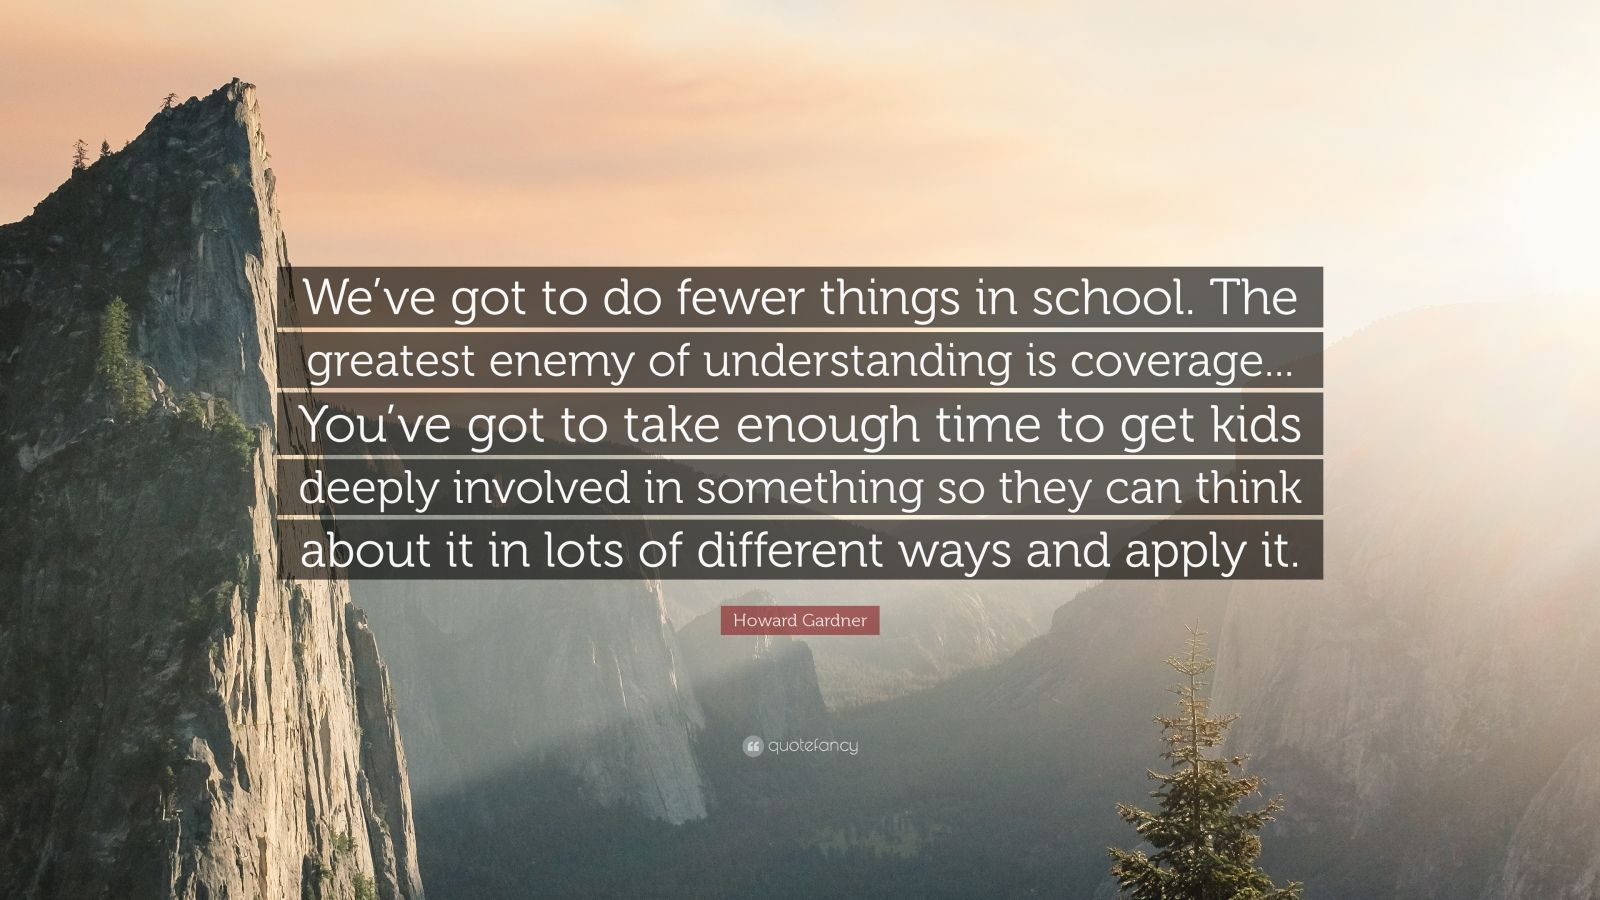 "Howard Gardner Quote: ""We've got to do fewer things in school. The greatest enemy of understanding is coverage... You've got to take enough time to get kids deeply involved in something so they can think about it in lots of different ways and apply it."""